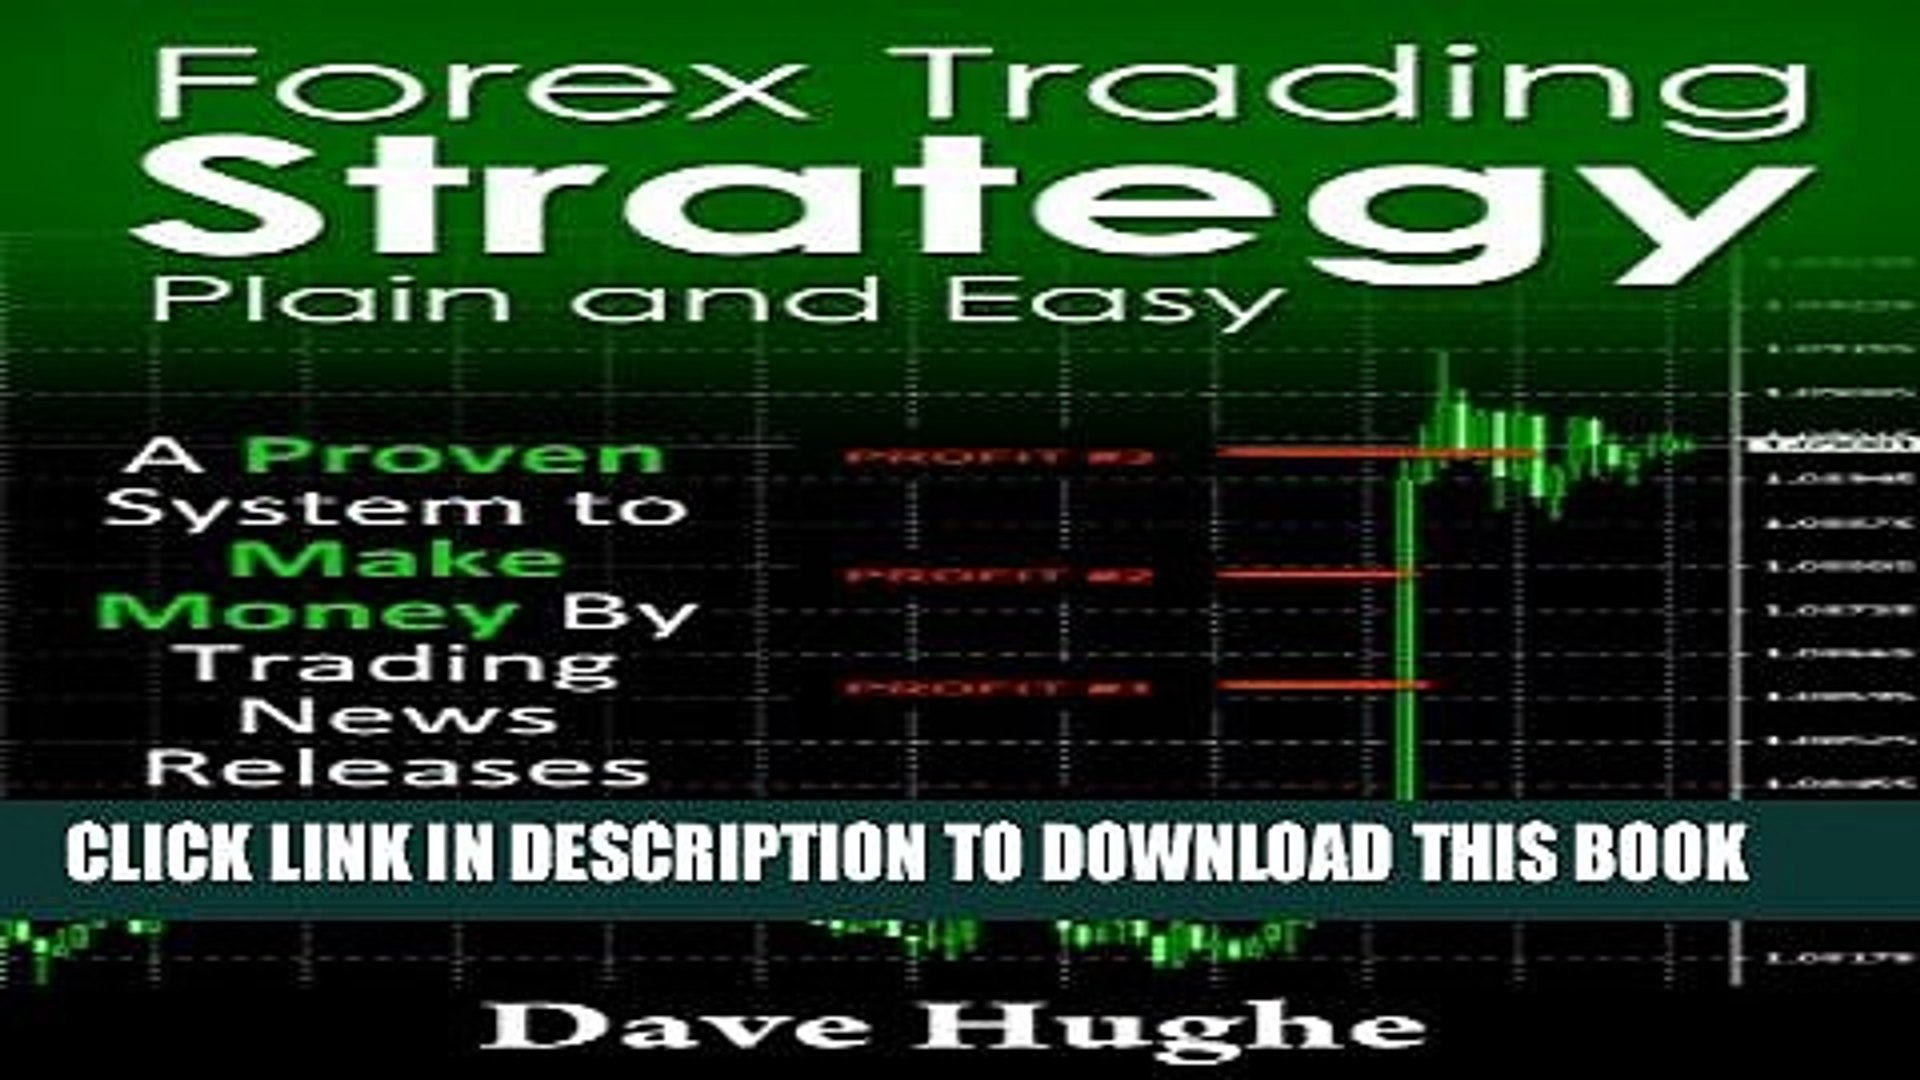 Collection Book Forex Trading Strategy -  Plain and Easy: A Proven System to Make Money Now By